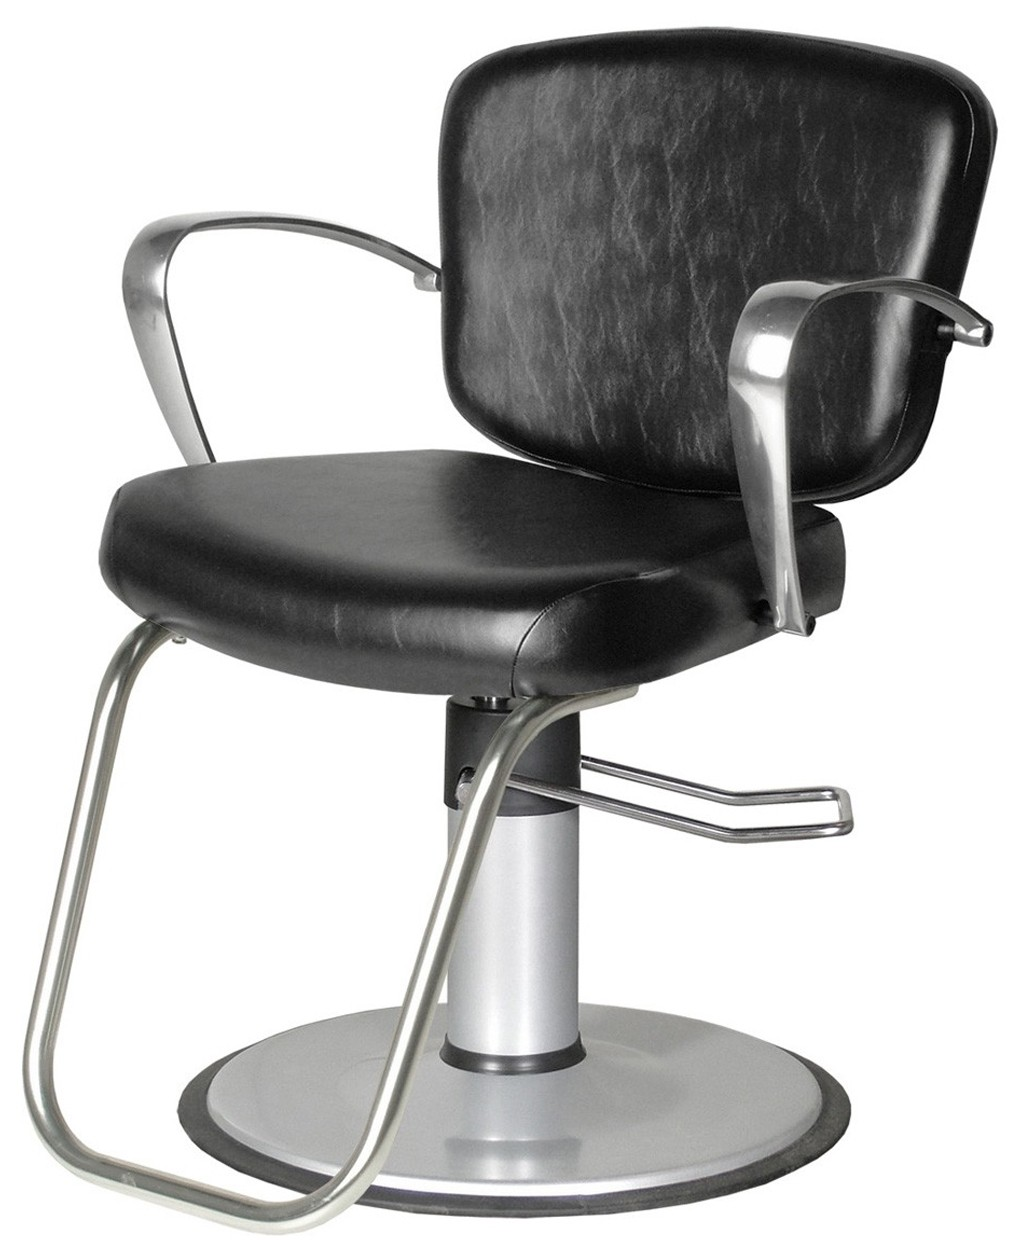 8300V Milano Styling Chair with Enviro Base